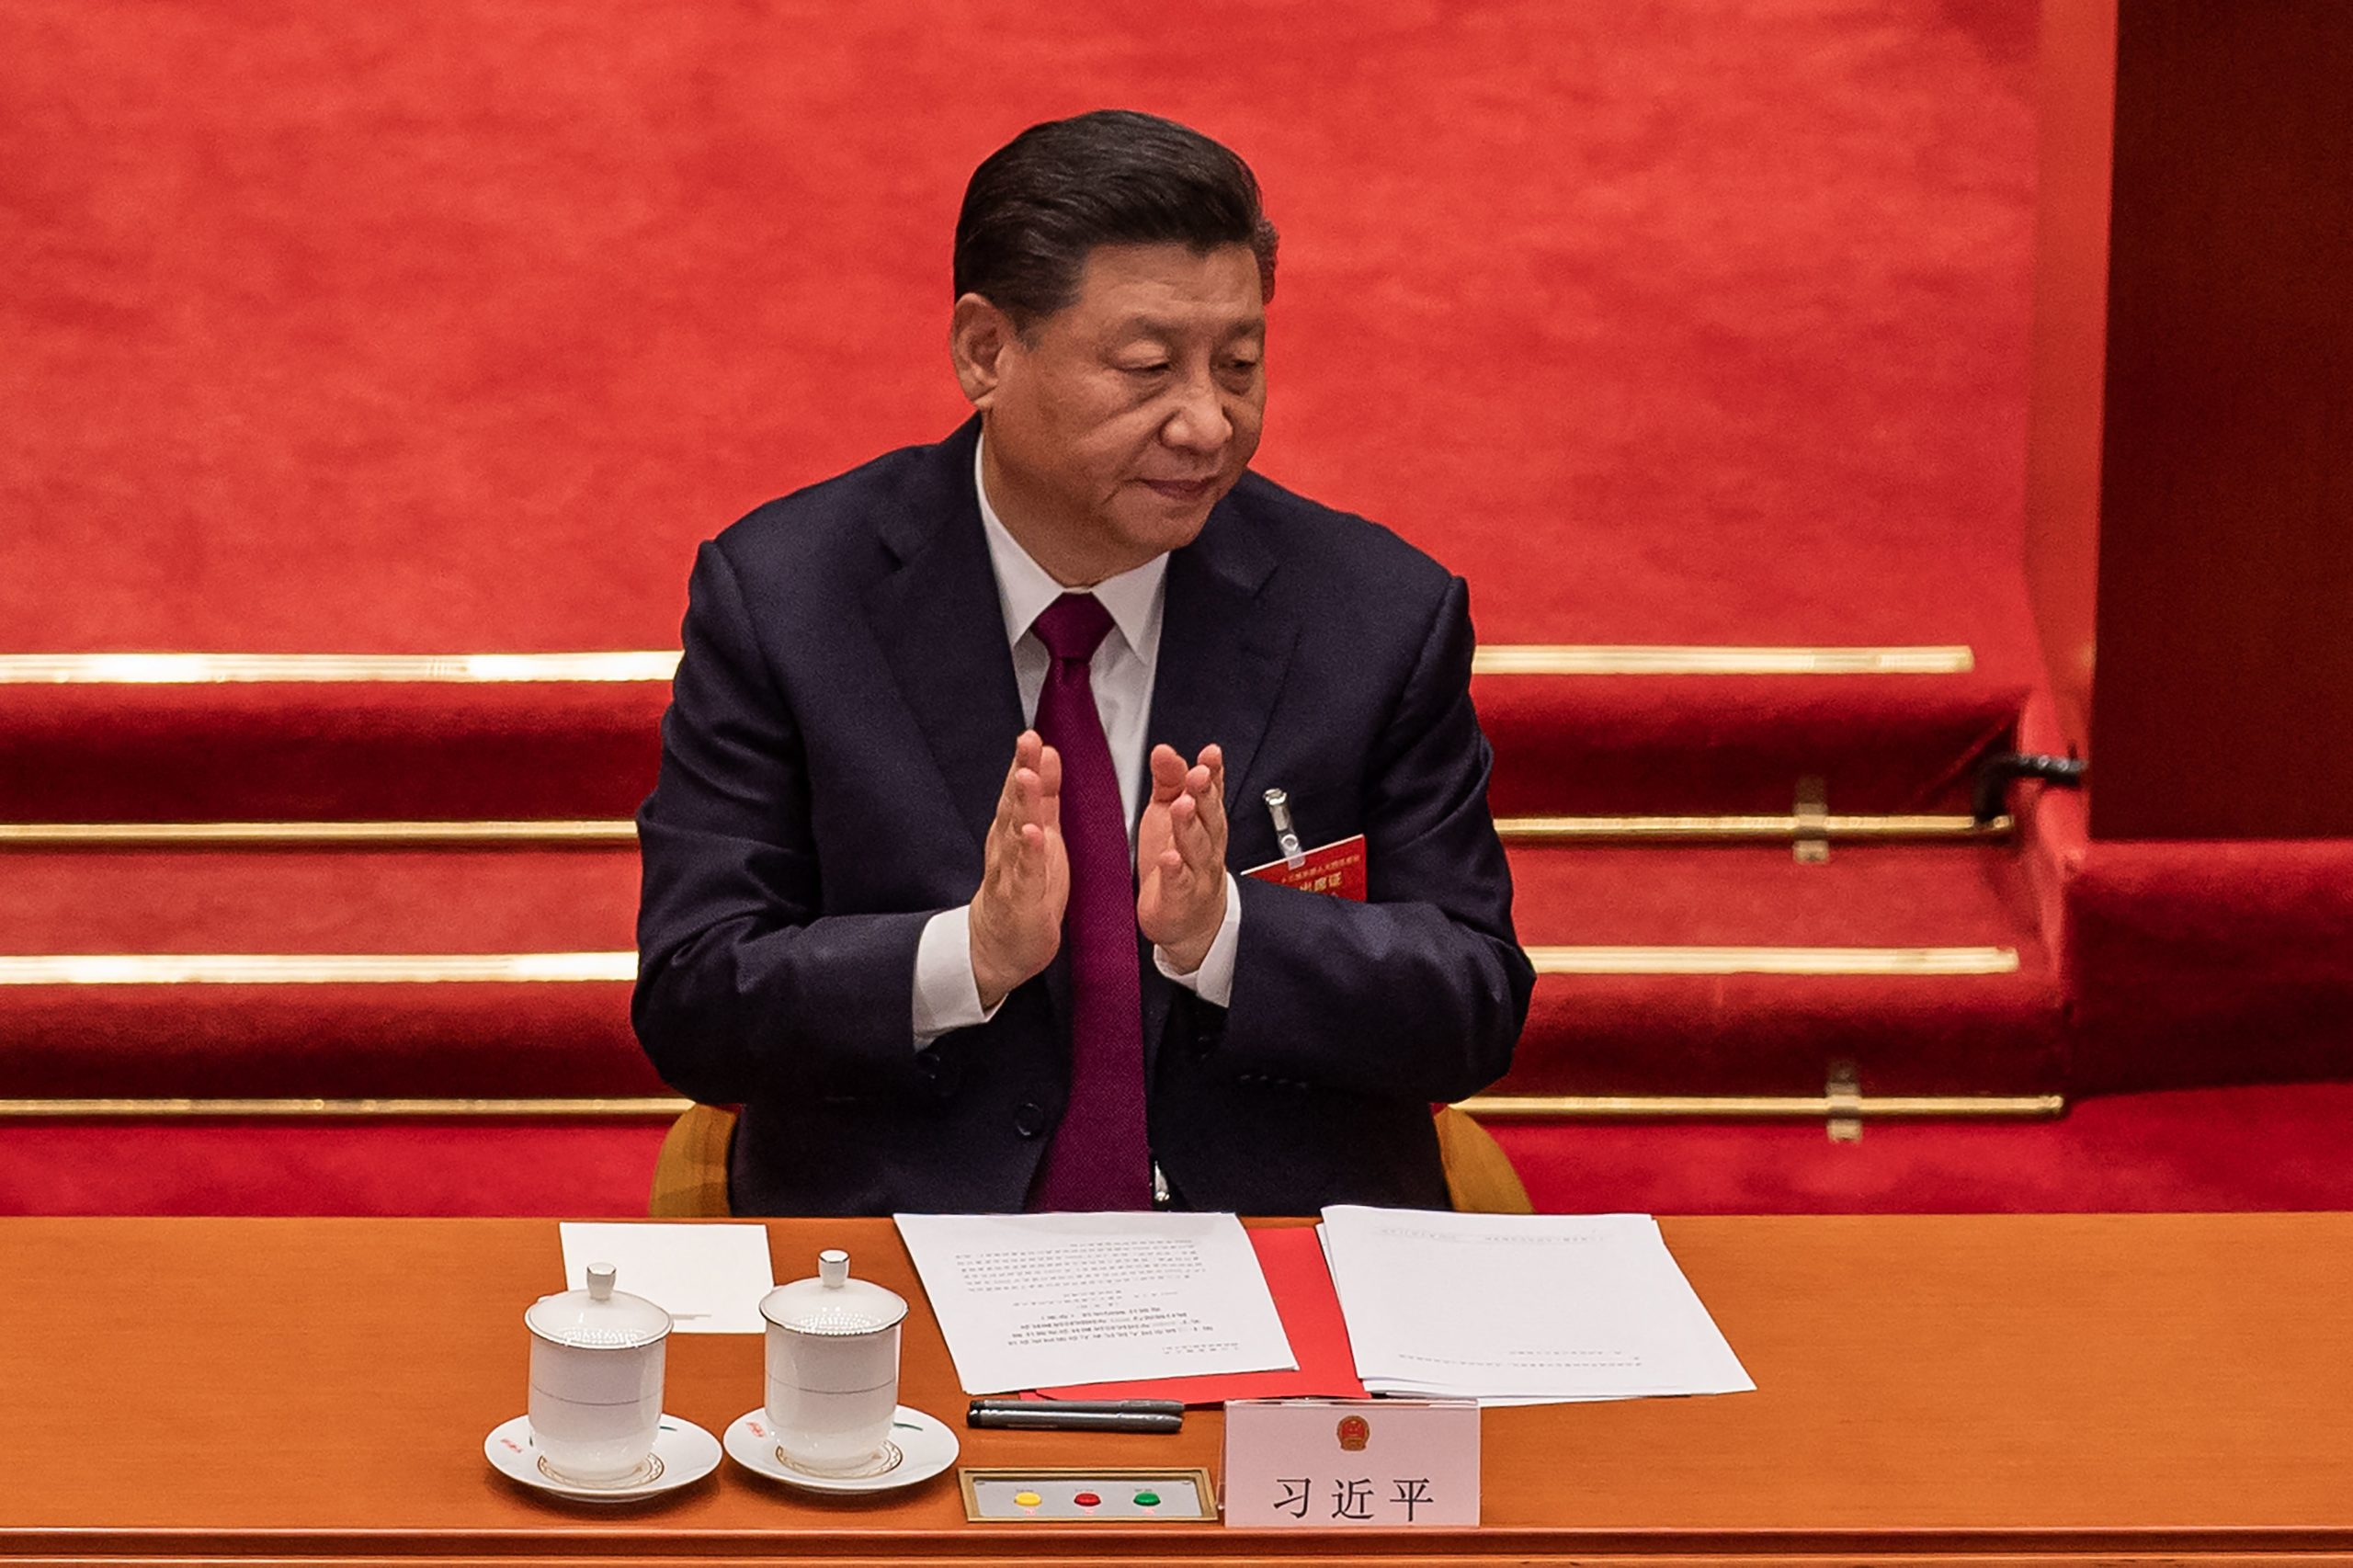 China's President Xi Jinping applauds after the result of the vote on changes to Hong Kong's election system was announced during the closing session of the National Peoples Congress (NPC) at the Great Hall of the People in Beijing on March 11, 2021. (Photo by NICOLAS ASFOURI/AFP via Getty Images)